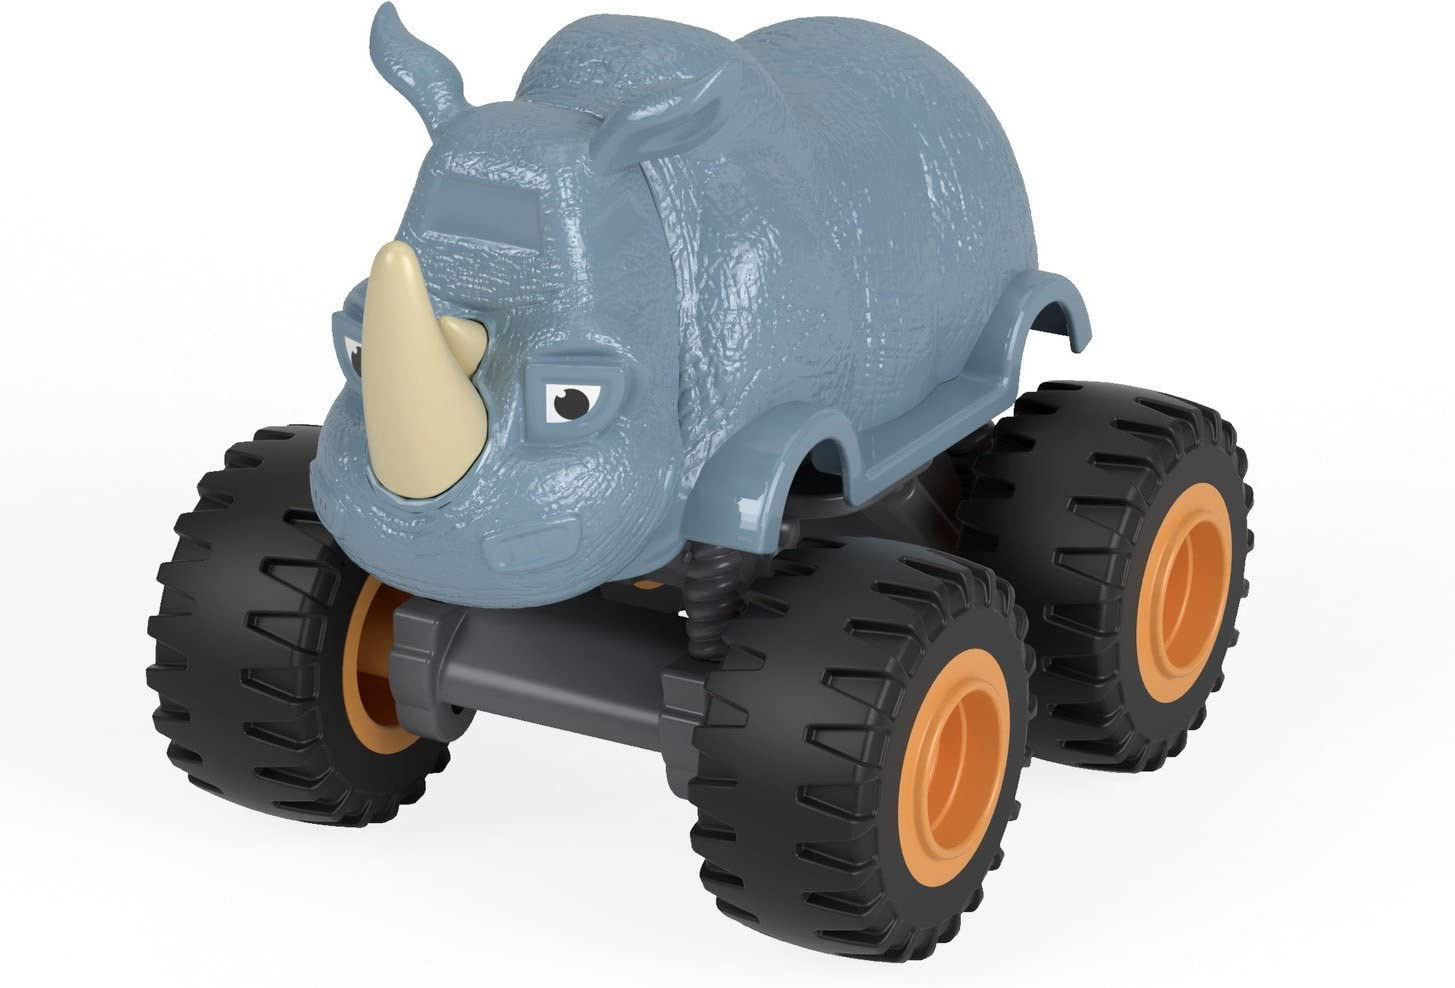 Fisher-Price Nickelodeon Blaze & the Monster Machines, Rhino